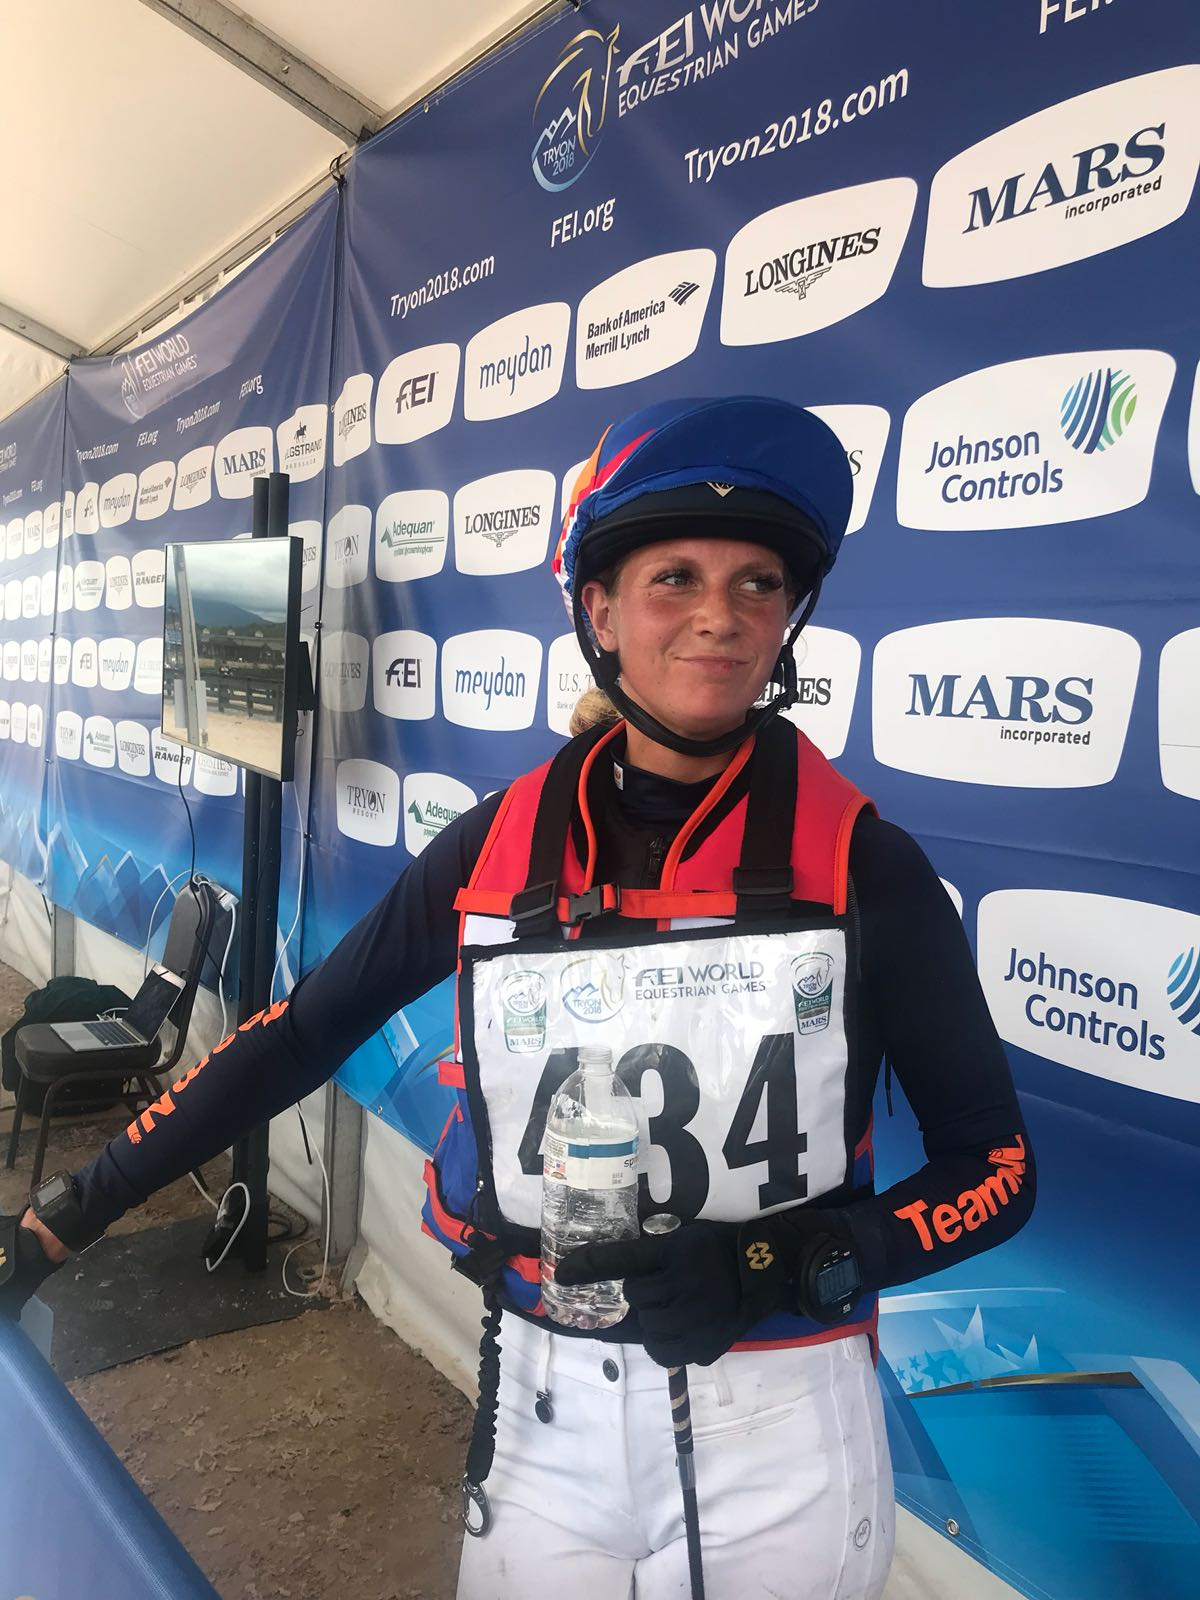 Tryon 2018: Top cross voor debutant Renske Kroeze *VIDEO*